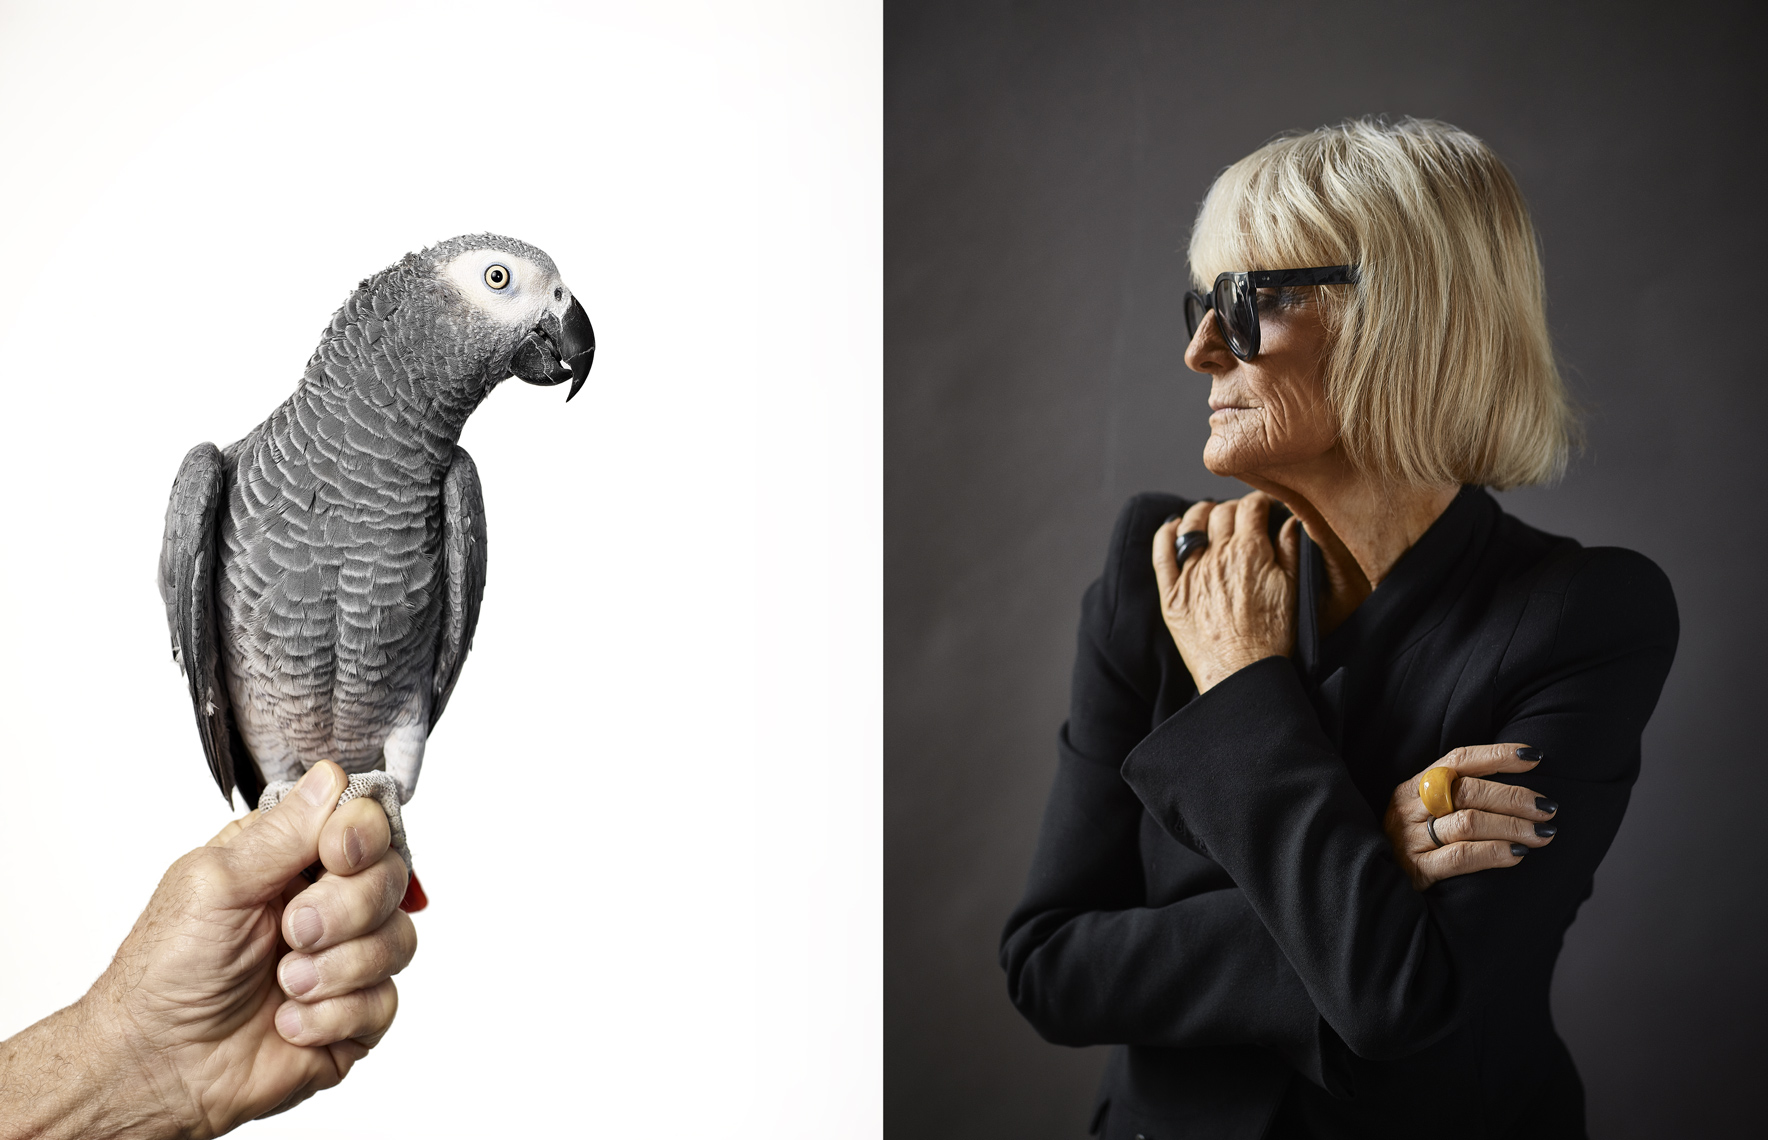 Barbara Hulanicki |  Fashion Designer and founder of Biba | Jeffery Salter celebrity portrait photographer  |